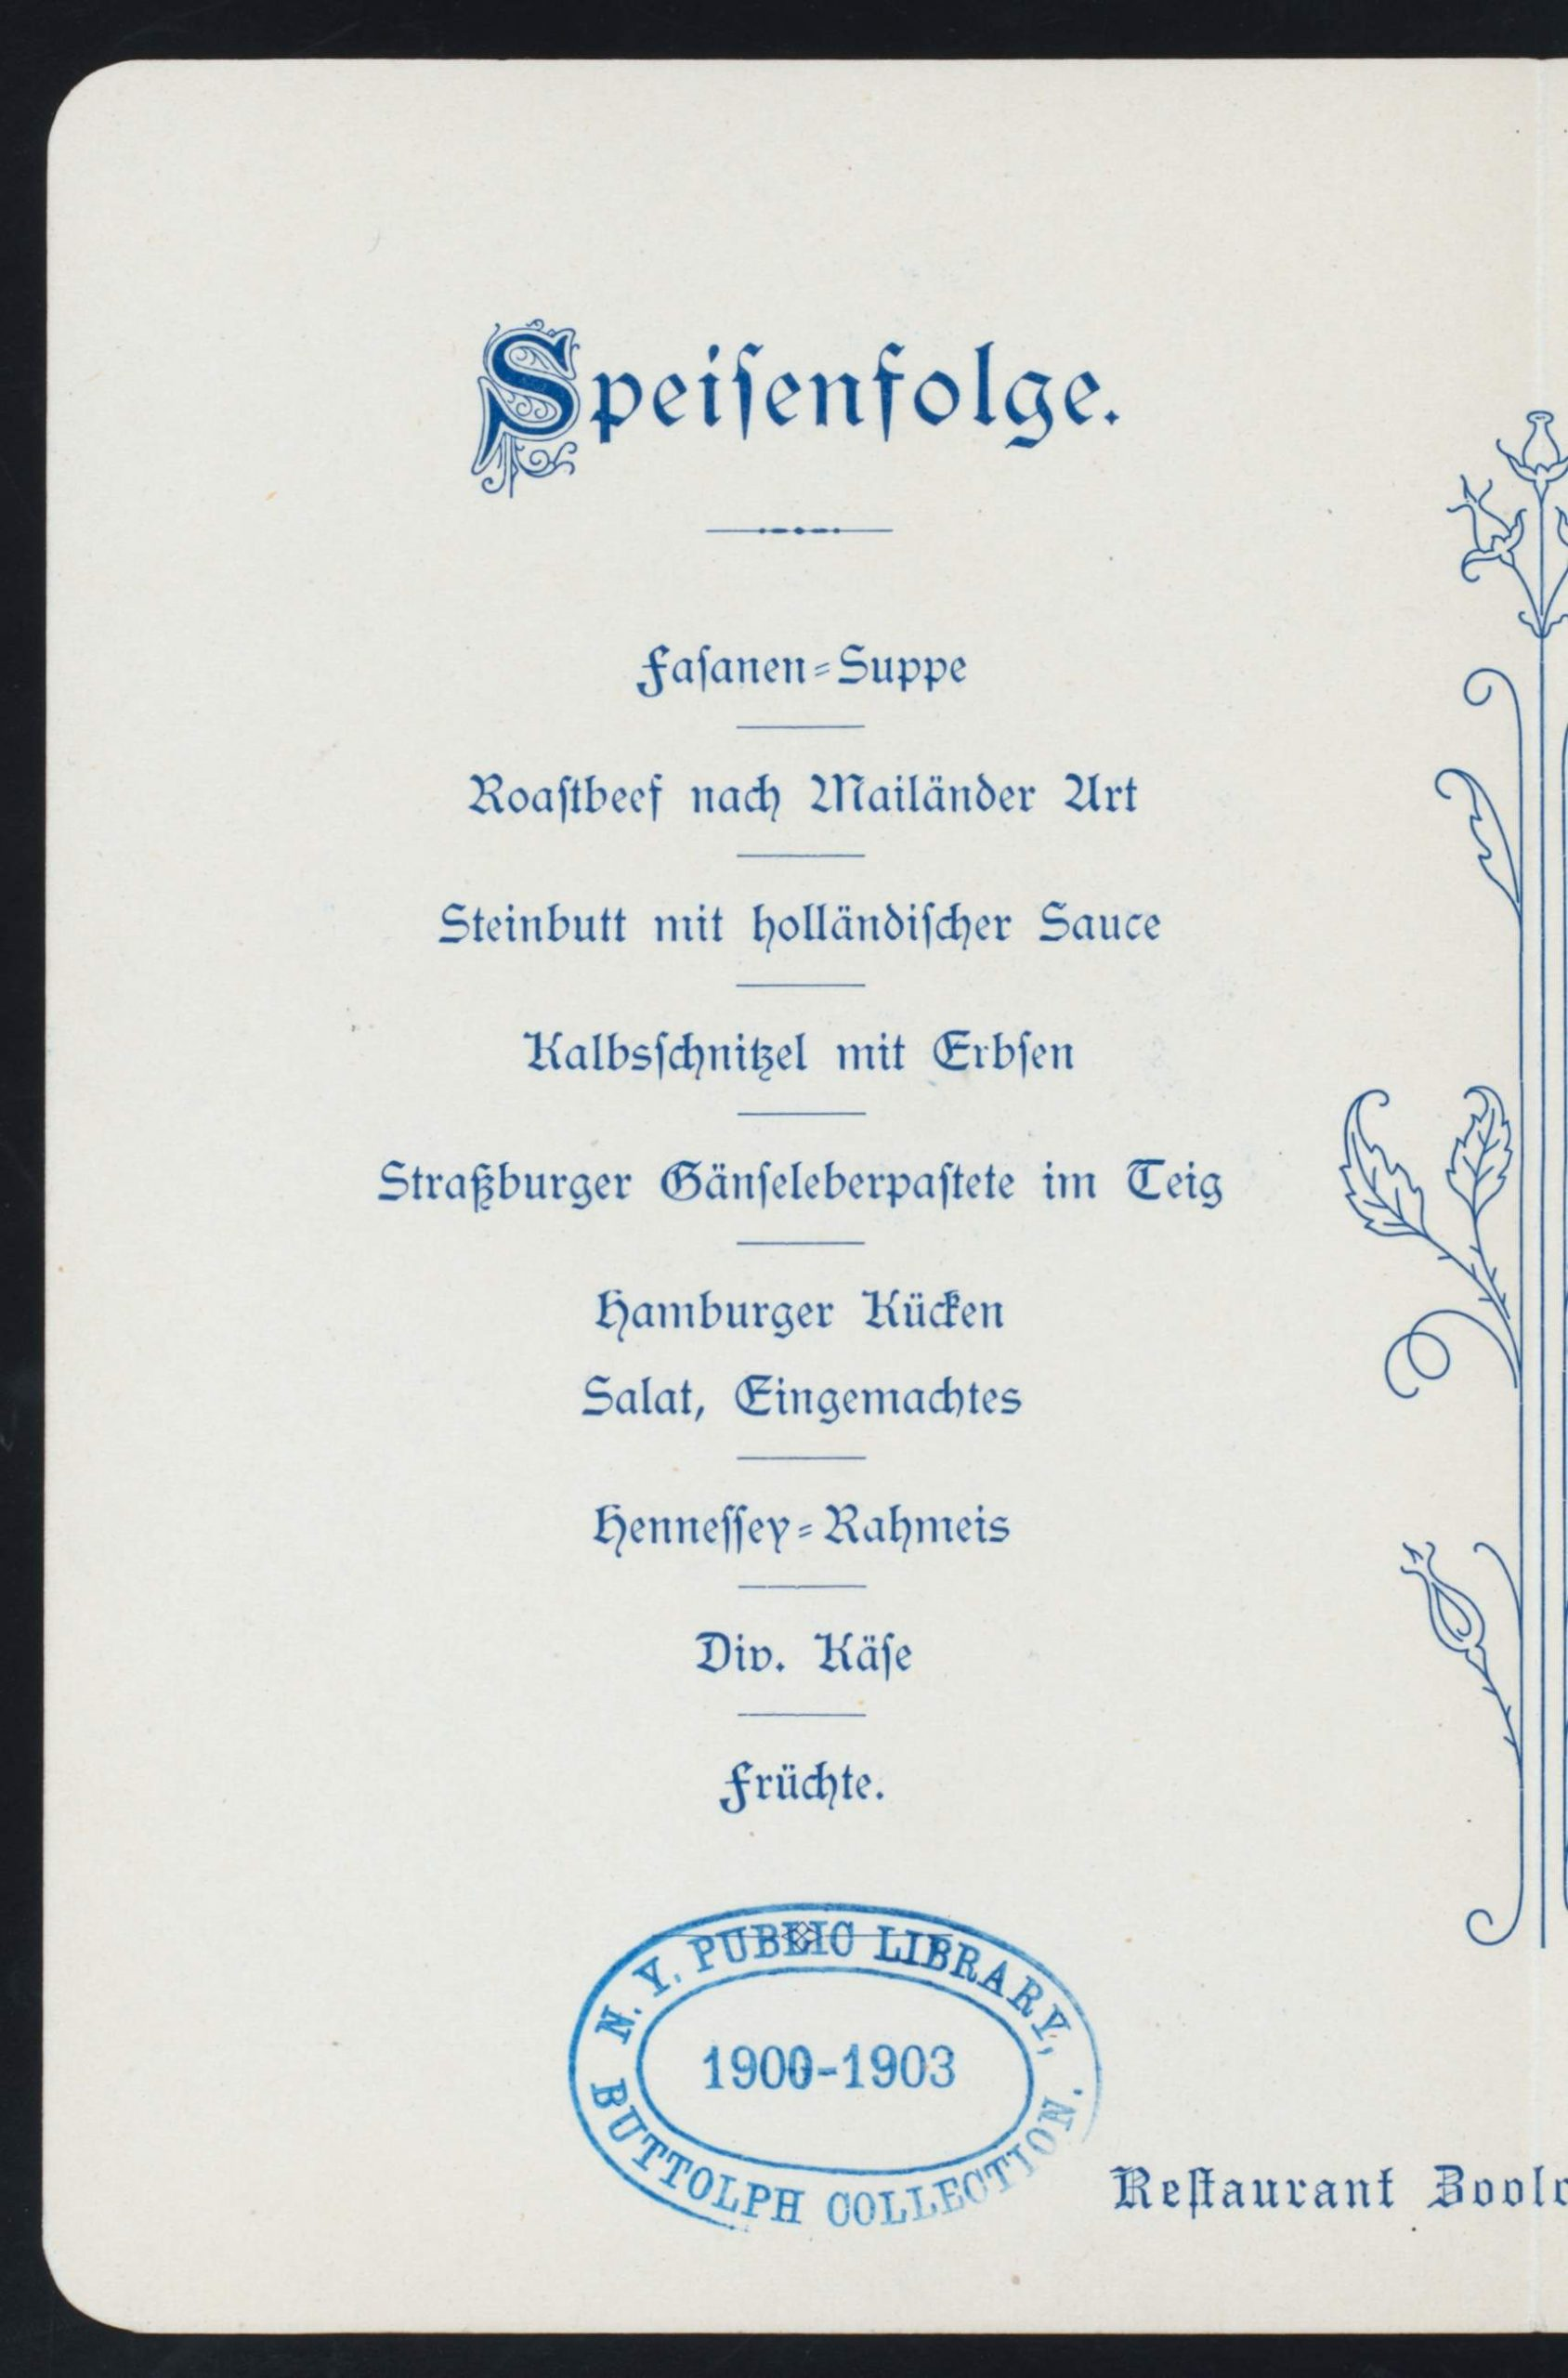 """File DAILY MENU held by RESTAURANT ZOOLOGISCHER GARTEN at """"HAMBURG GERMANY """" FOR NYPL Hades"""